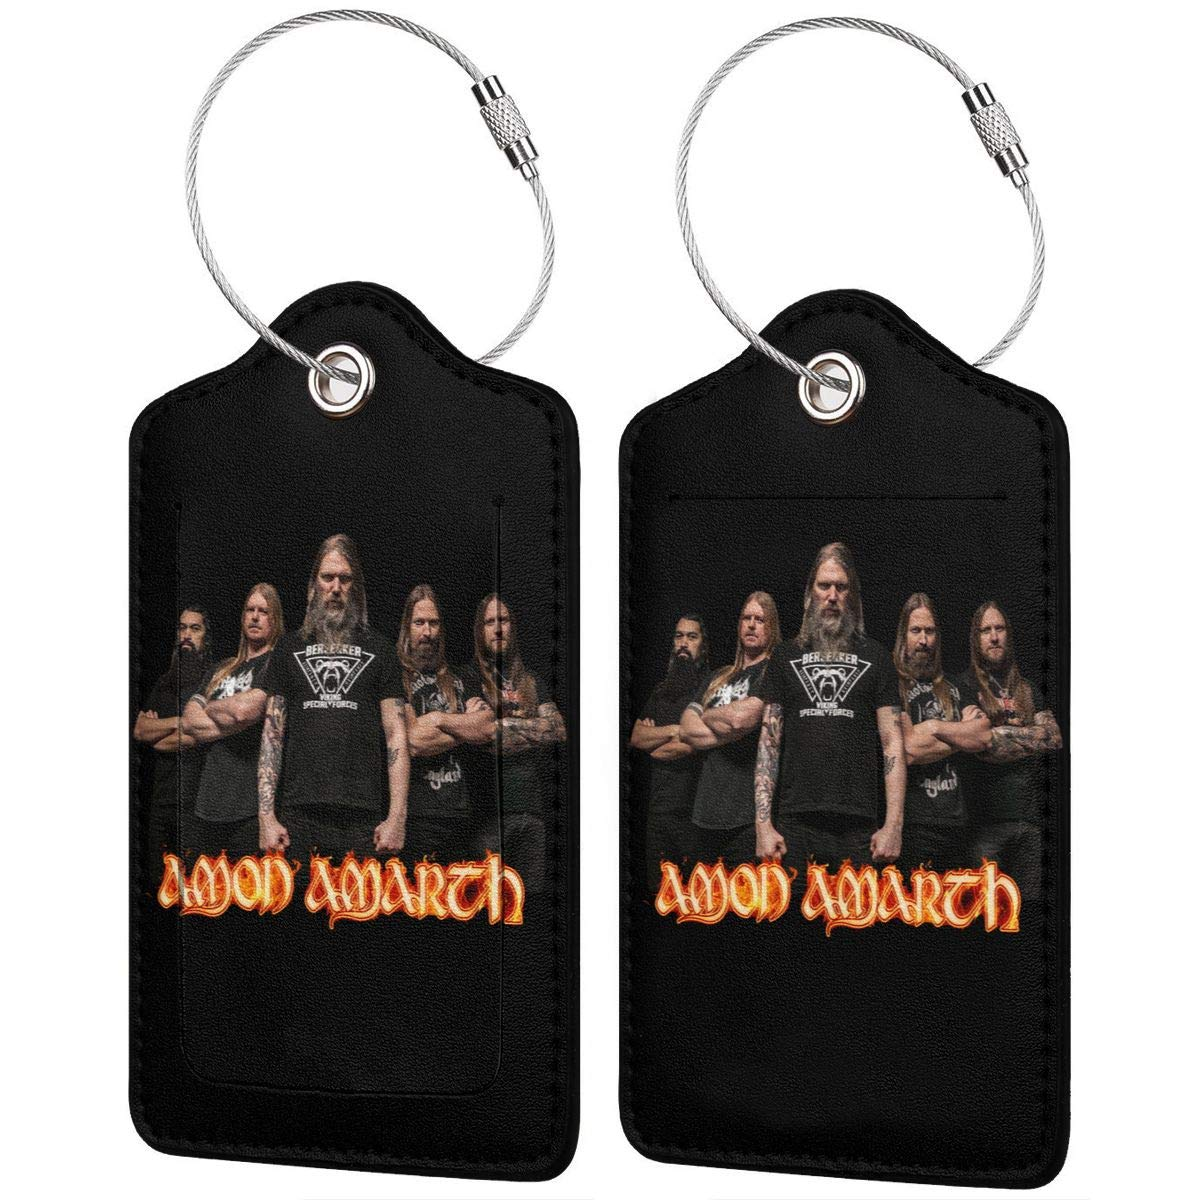 LIKUNMING Amon Amarth Travel Luggage Tags Travel Suitcase Bag Labels Checked Baggage Tags